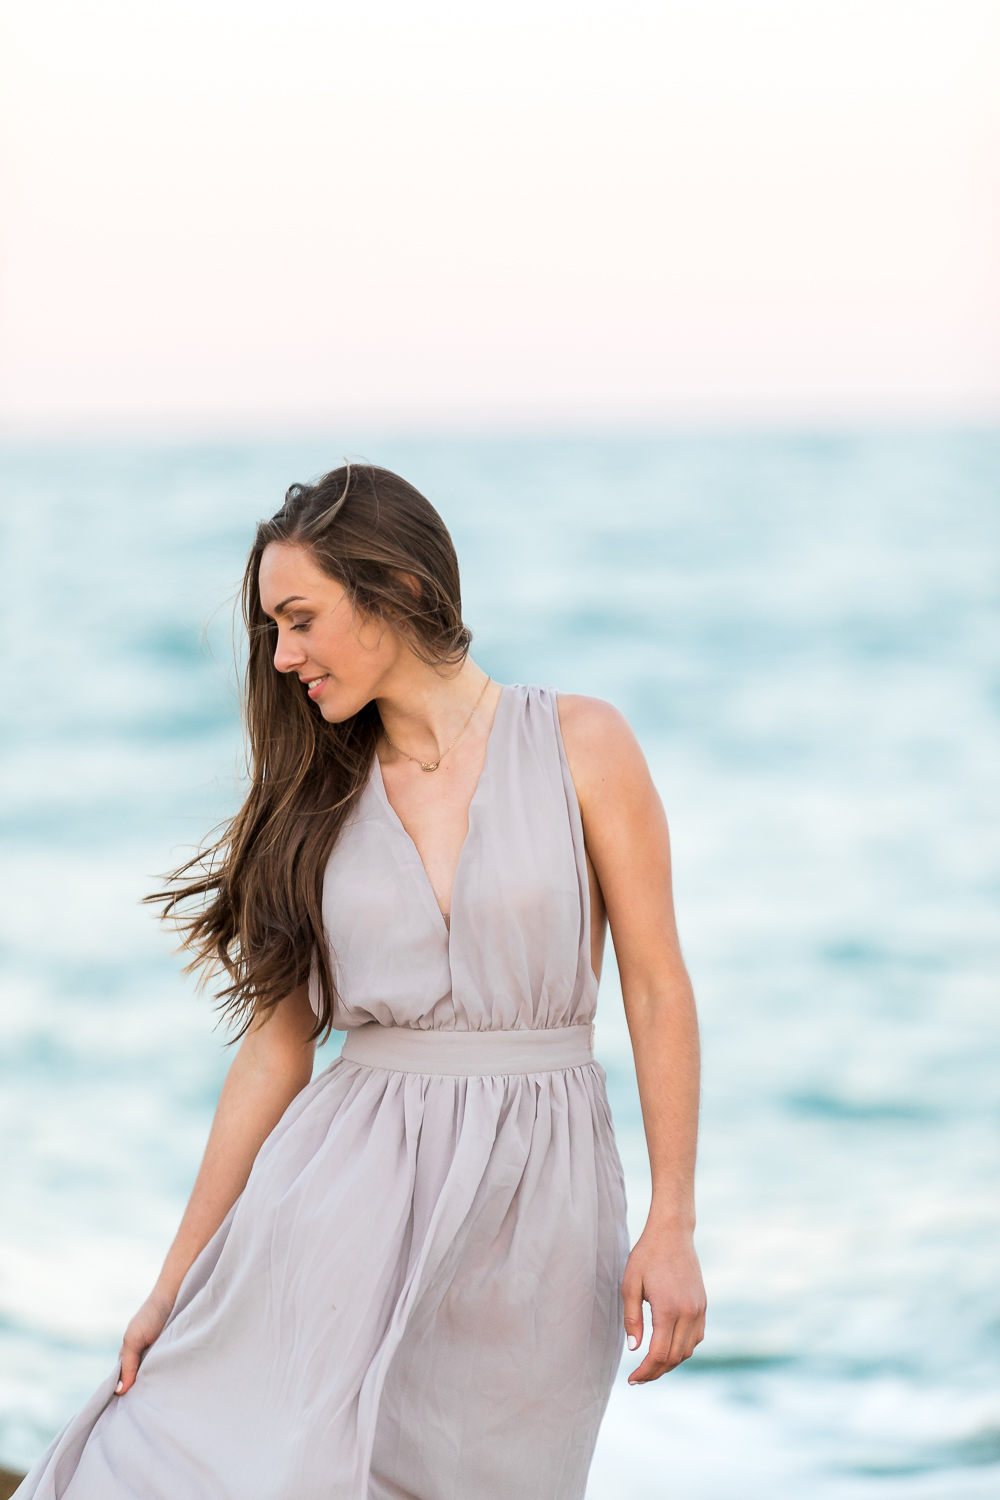 Senior girl picture and outfit ideas for a beach photoshoot